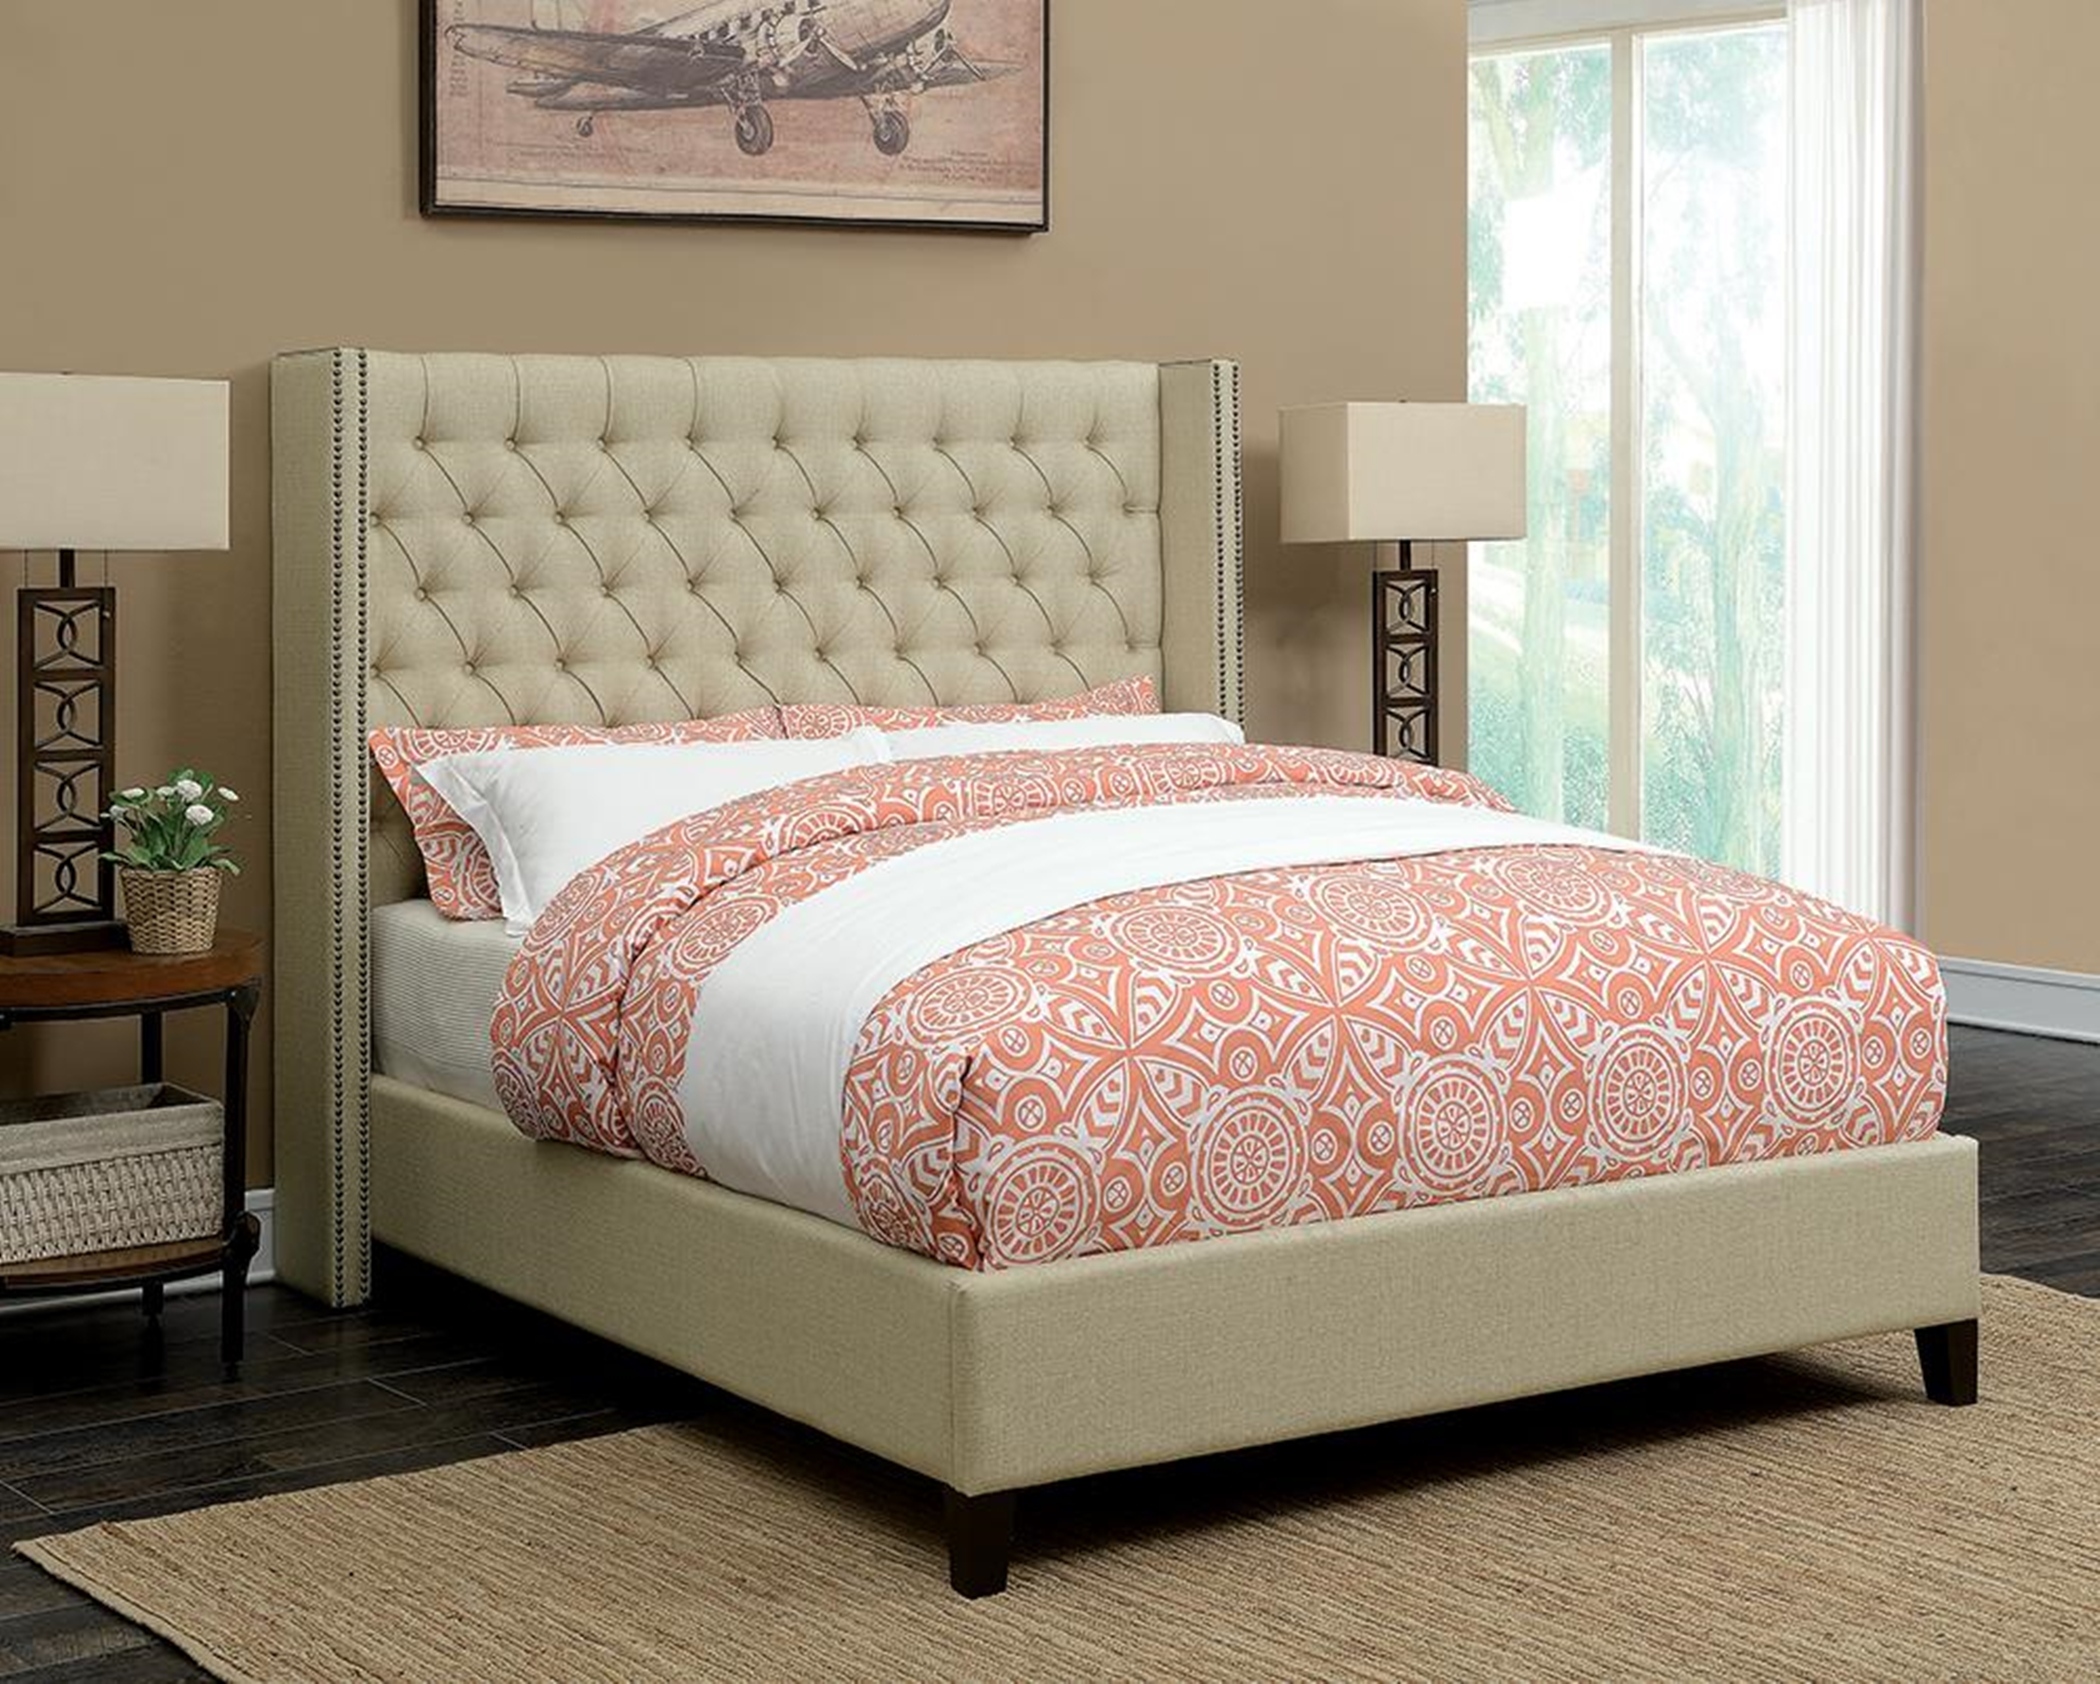 Benicia Beige Upholstered King Bed